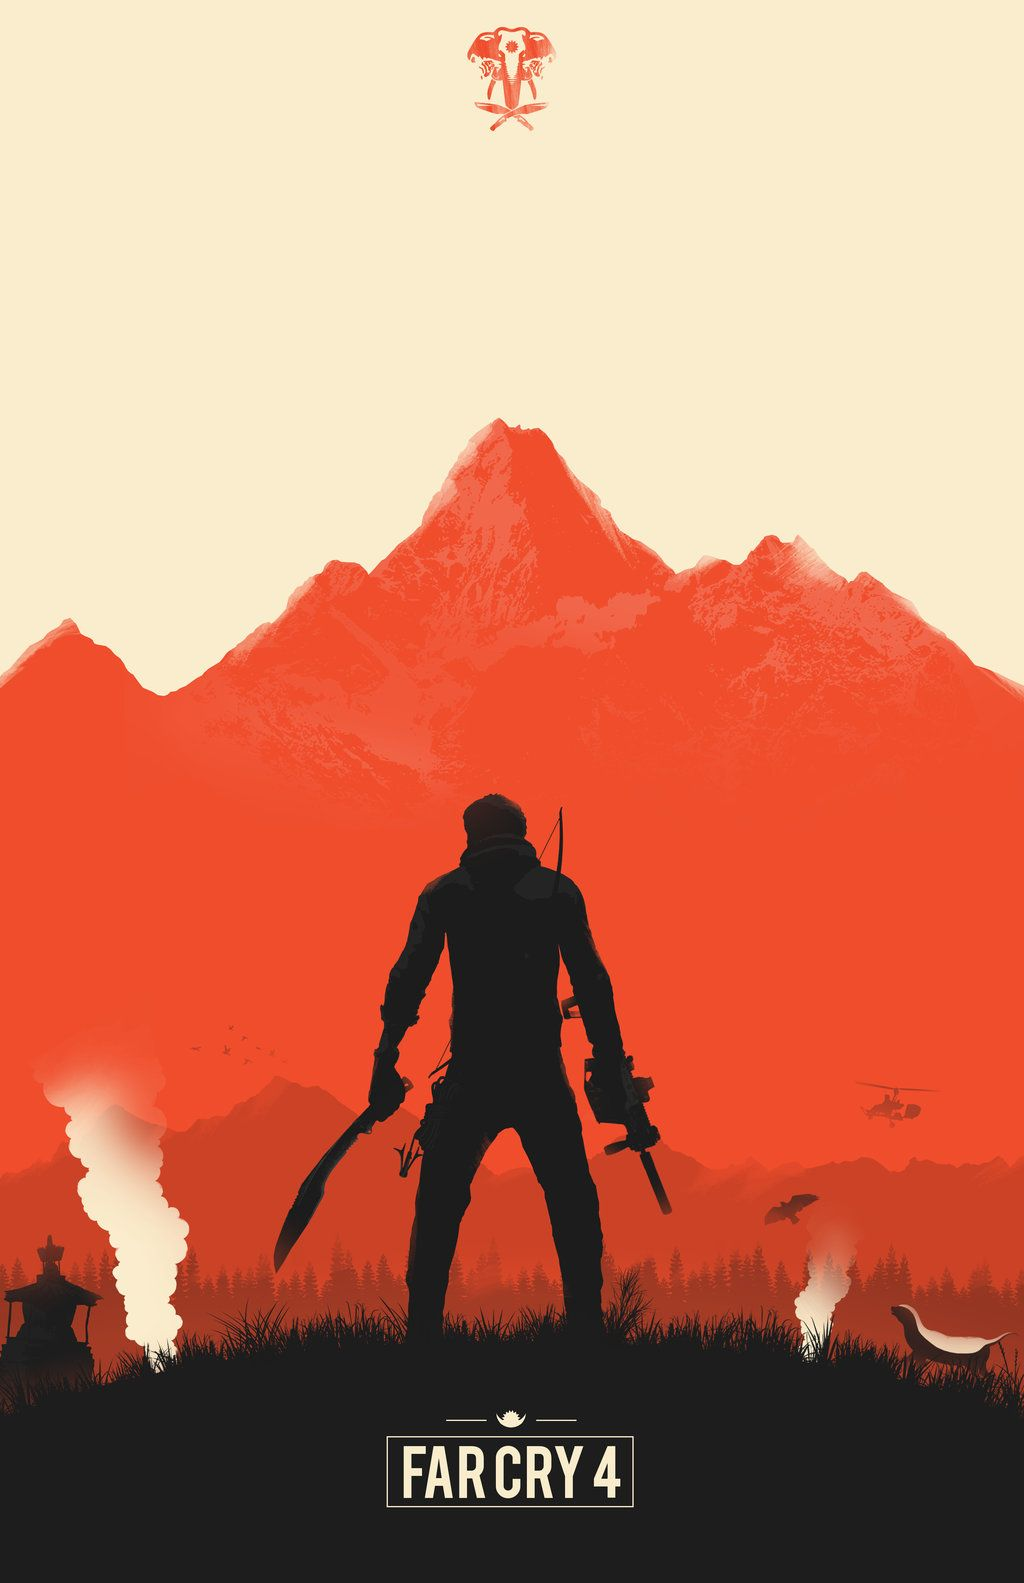 far cry 4 by felix tindall design story twitter